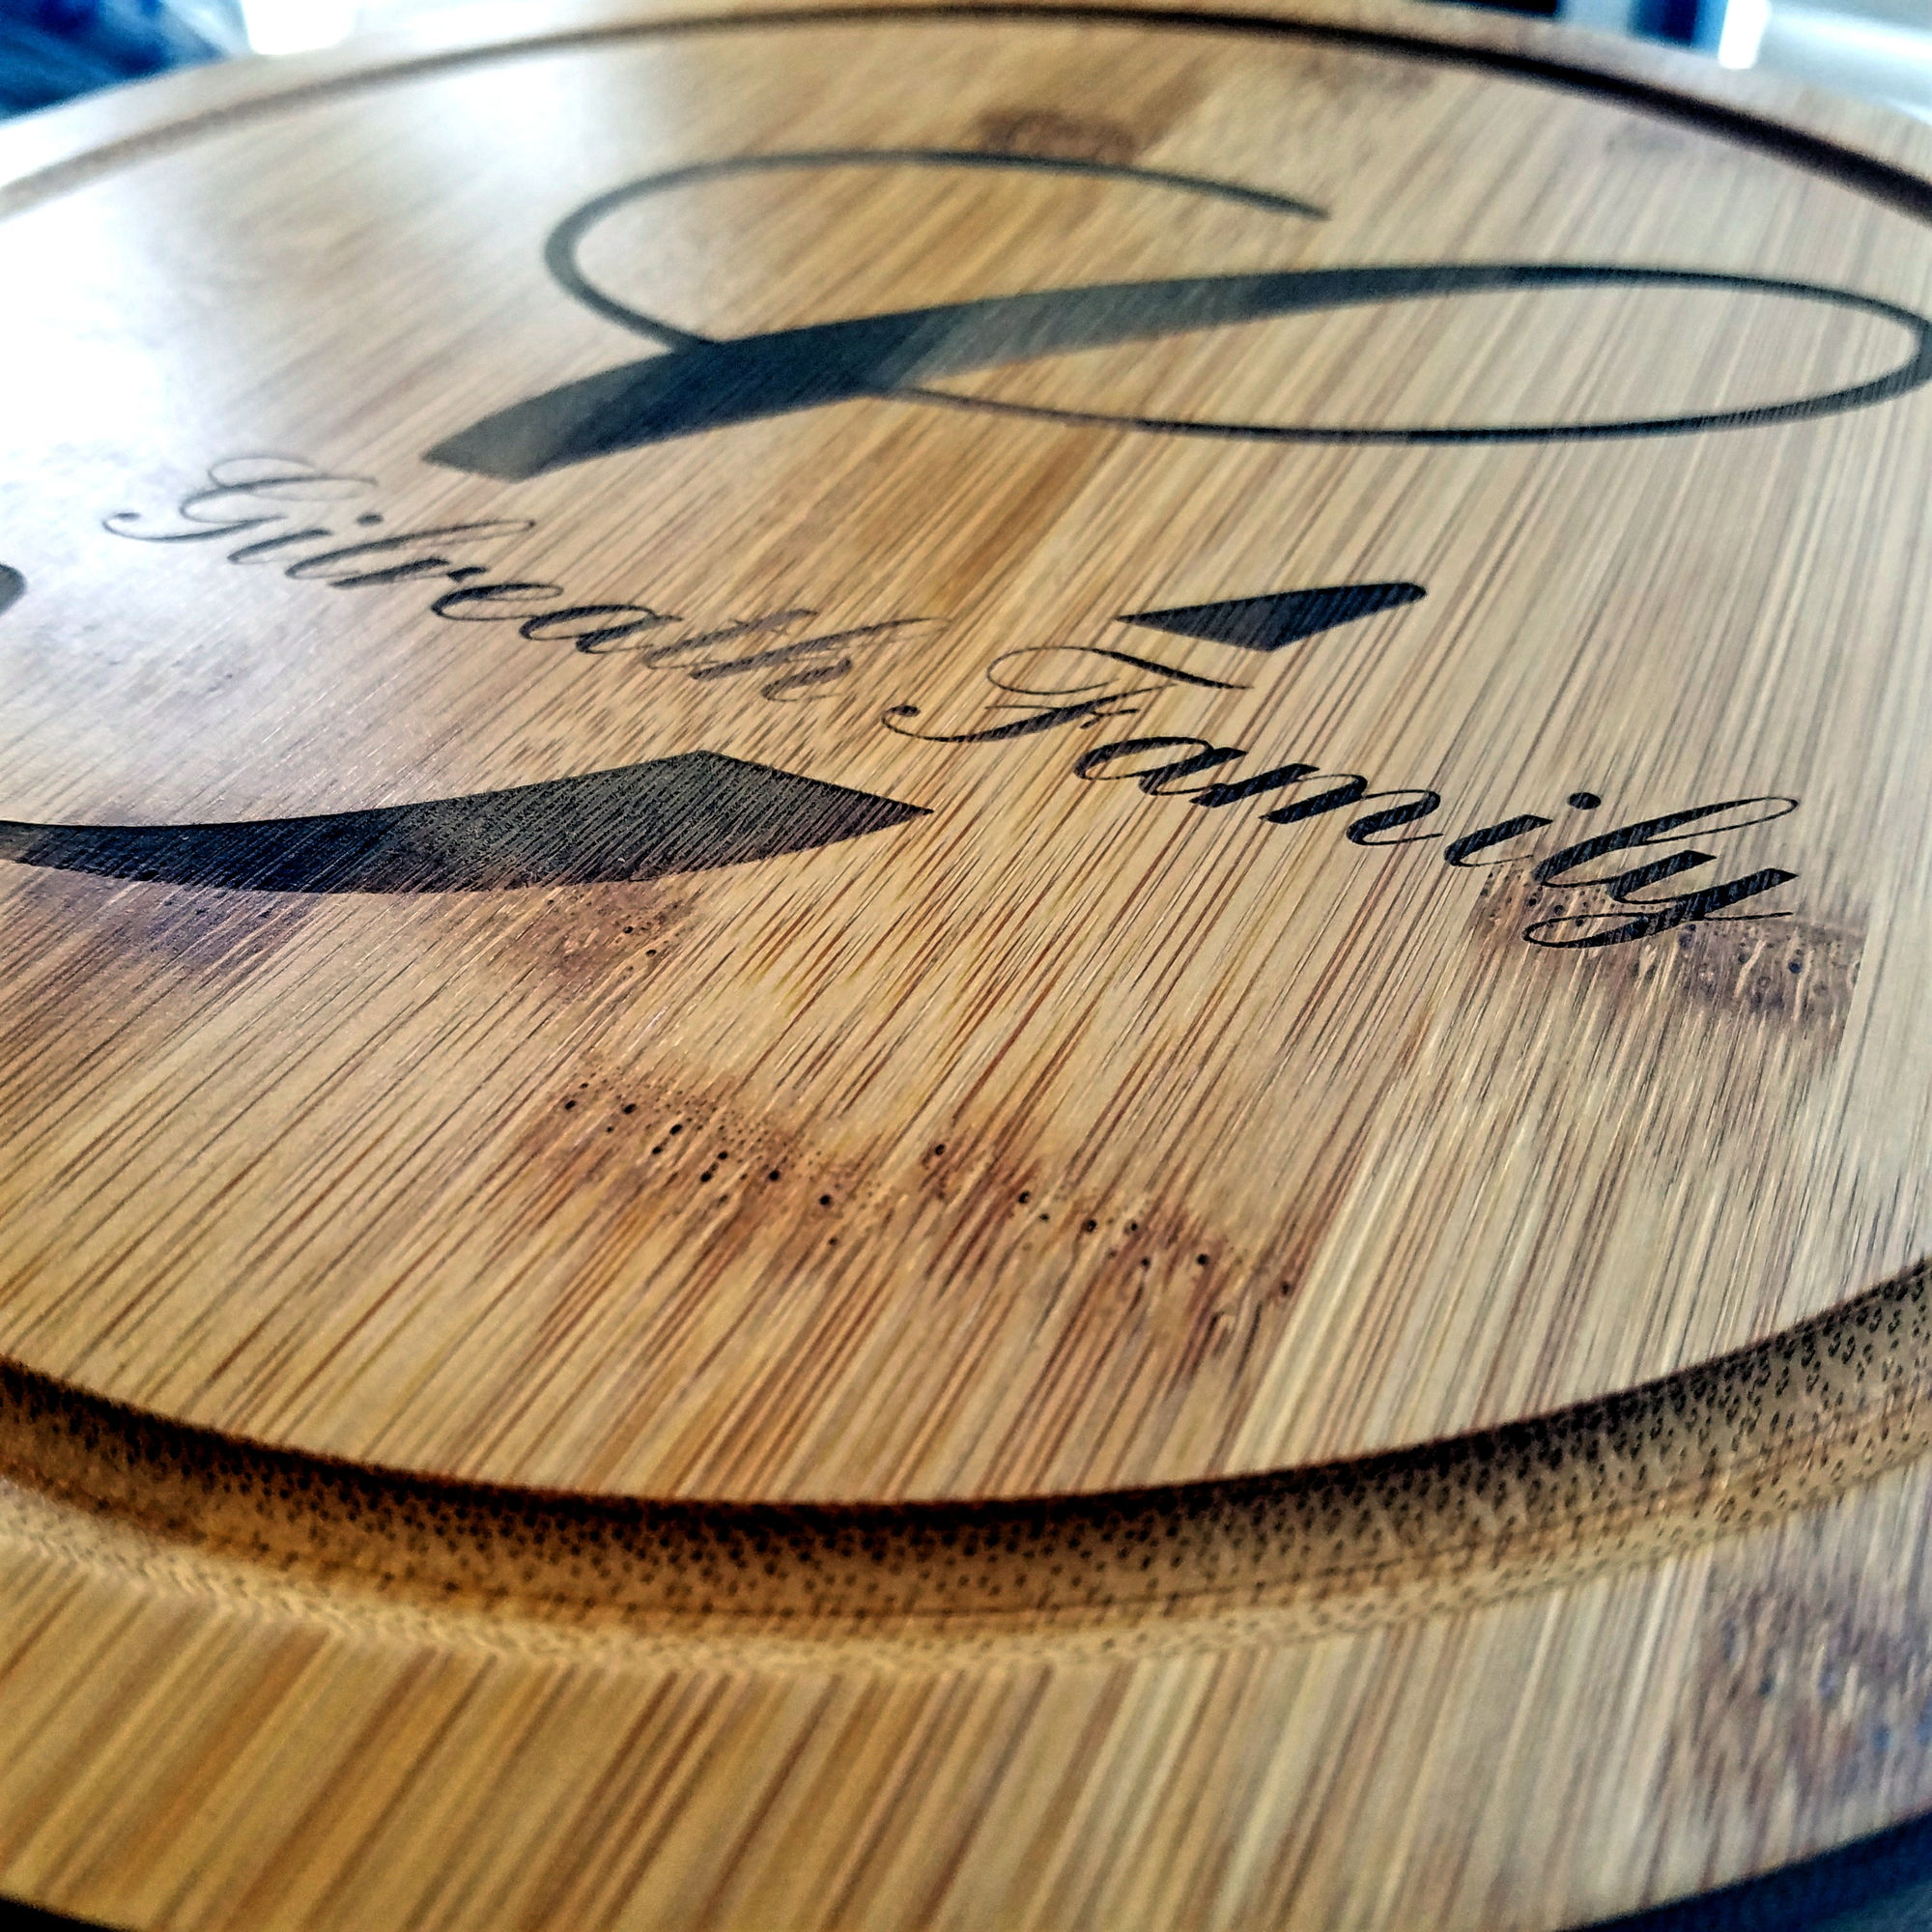 custom engraved cheese board with monogram and last name